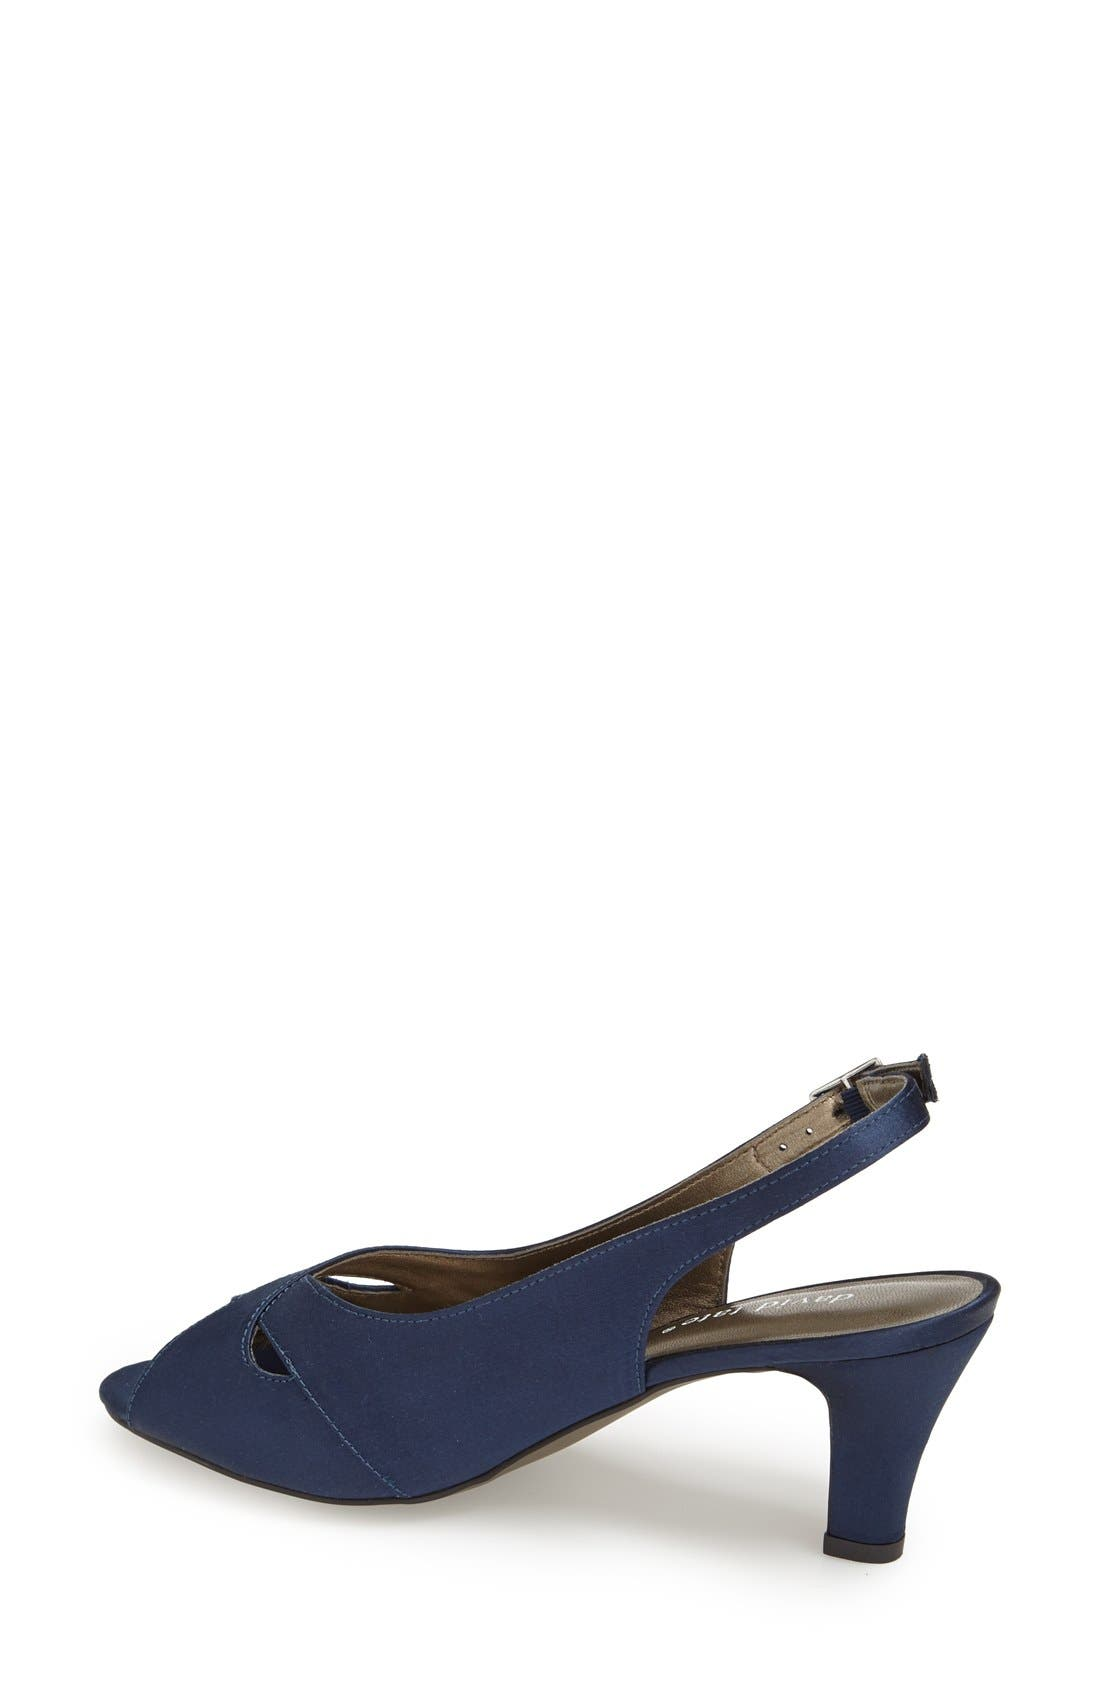 Alternate Image 3  - David Tate 'Palm' Slingback Satin Sandal (Women)